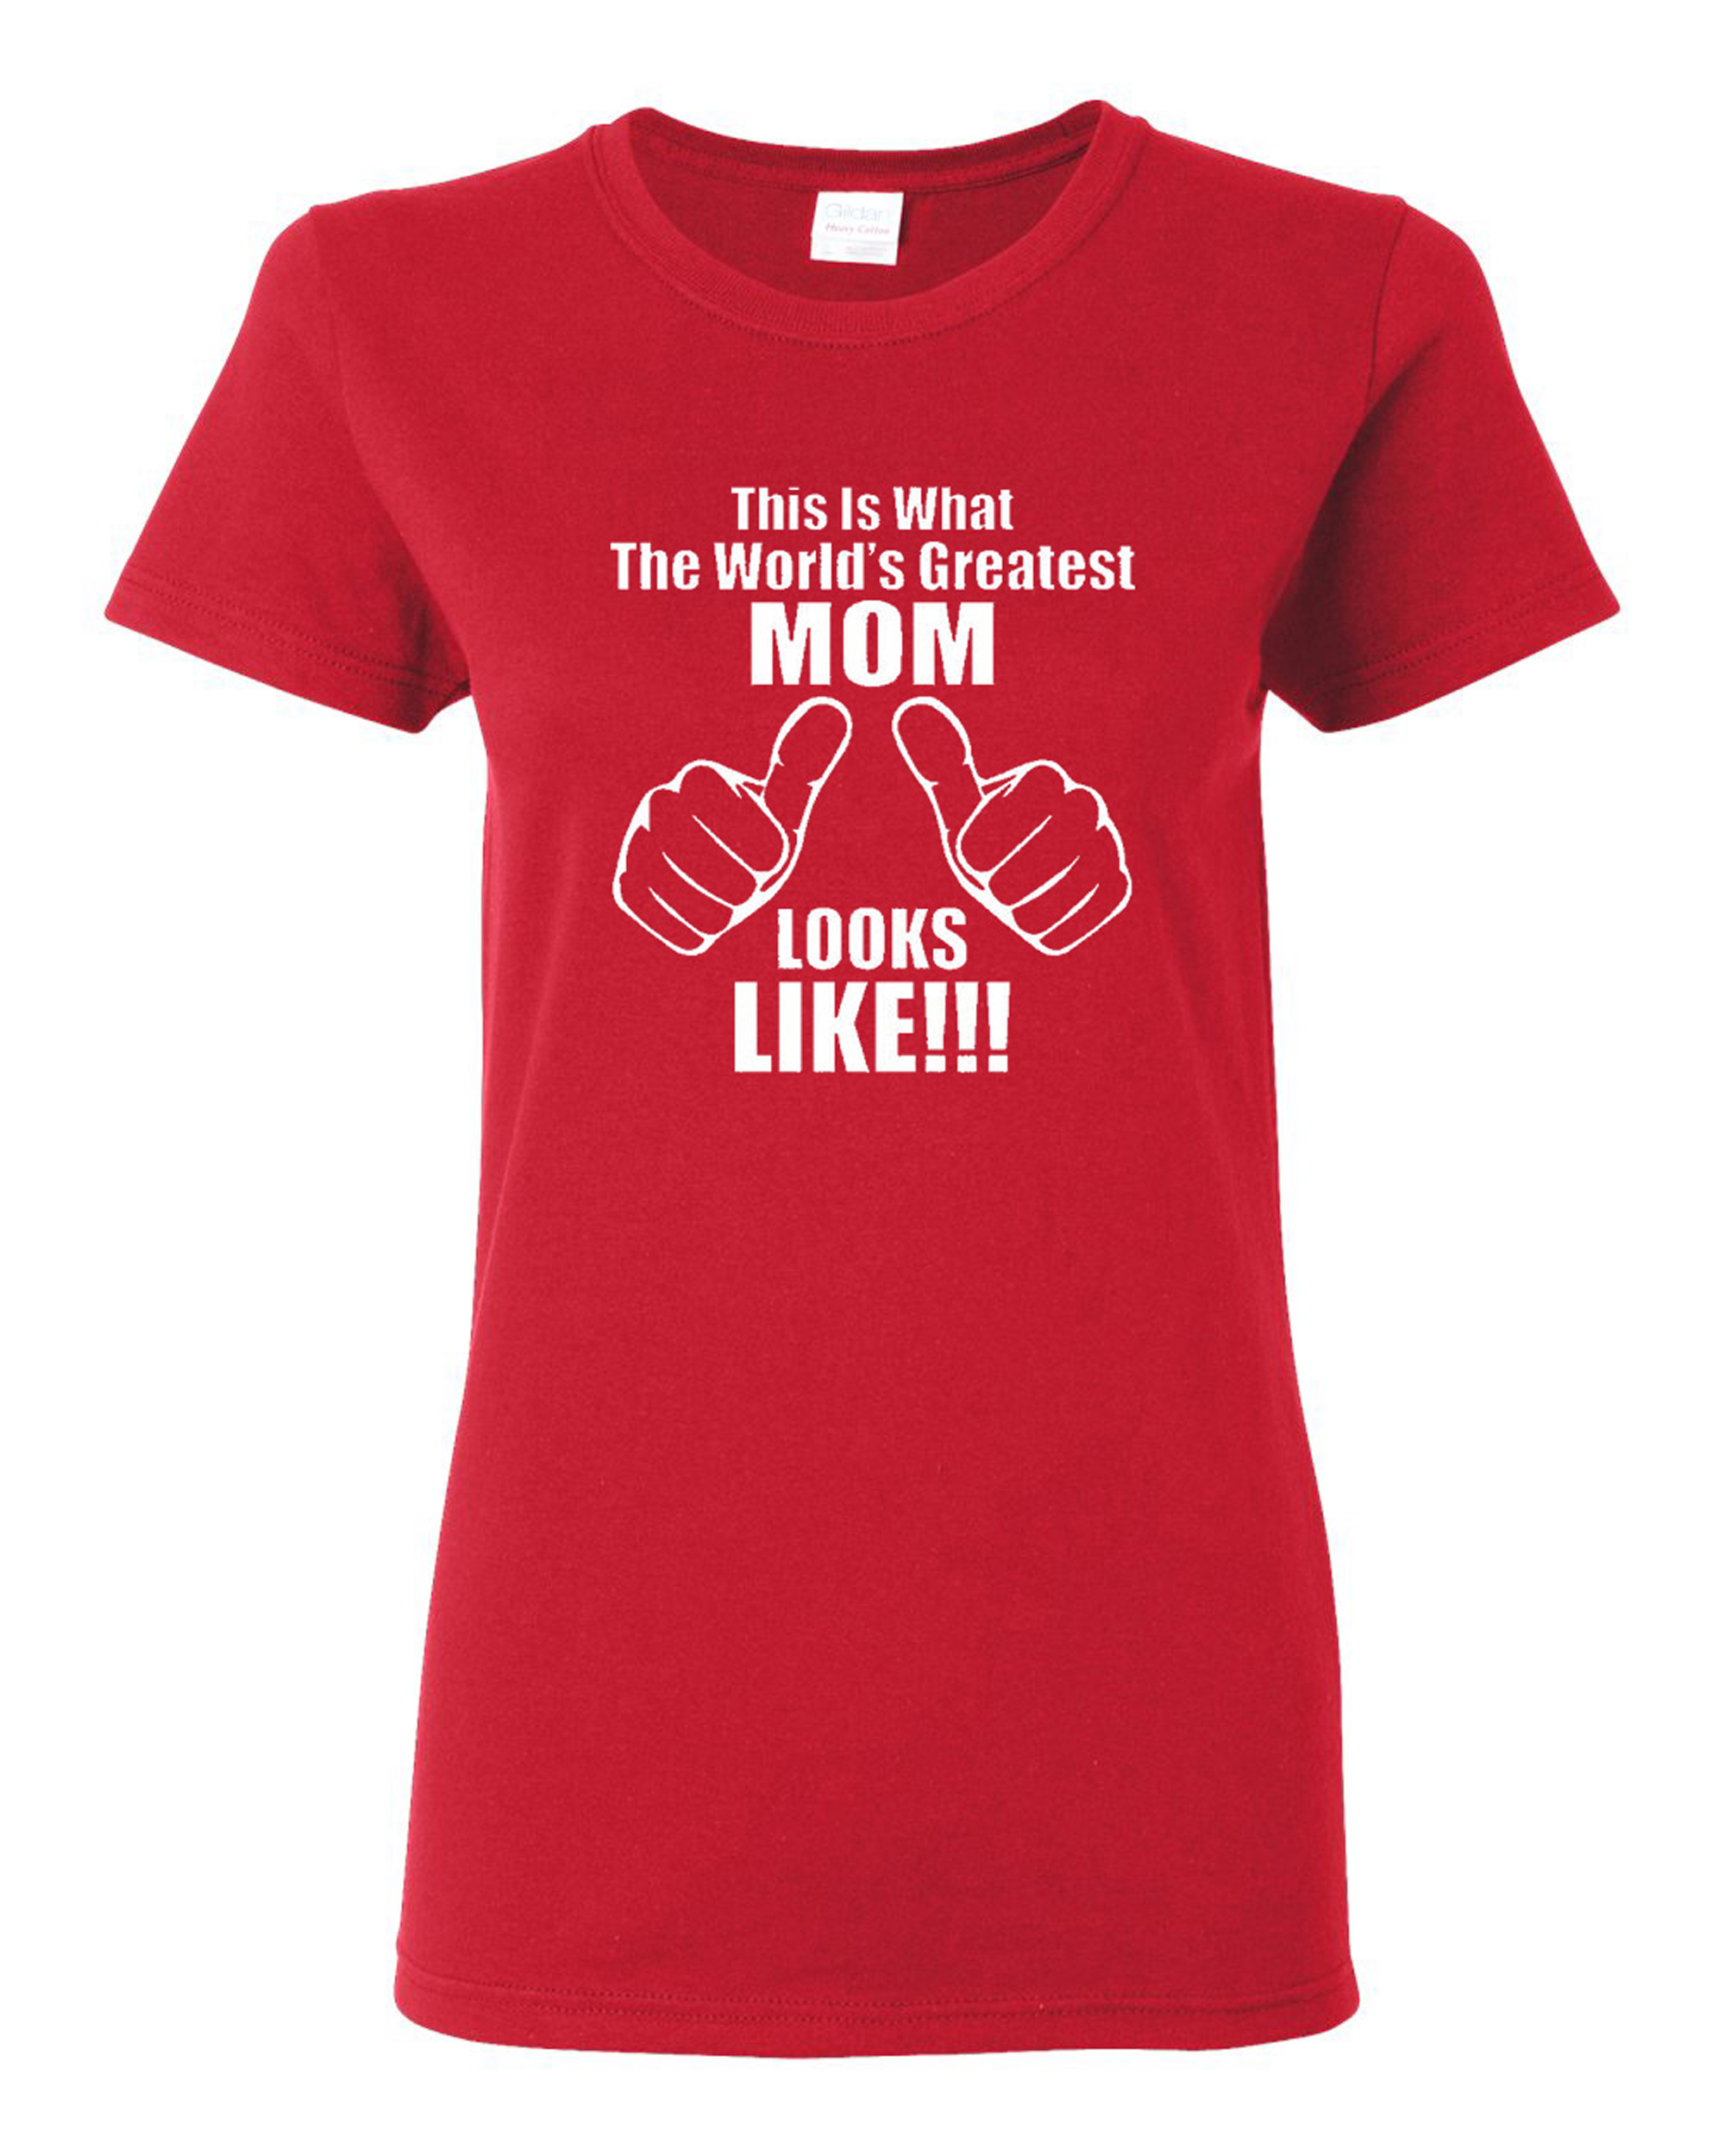 Ladies This Is What The World's Greatest Mom Looks Like T-Shirt Tee